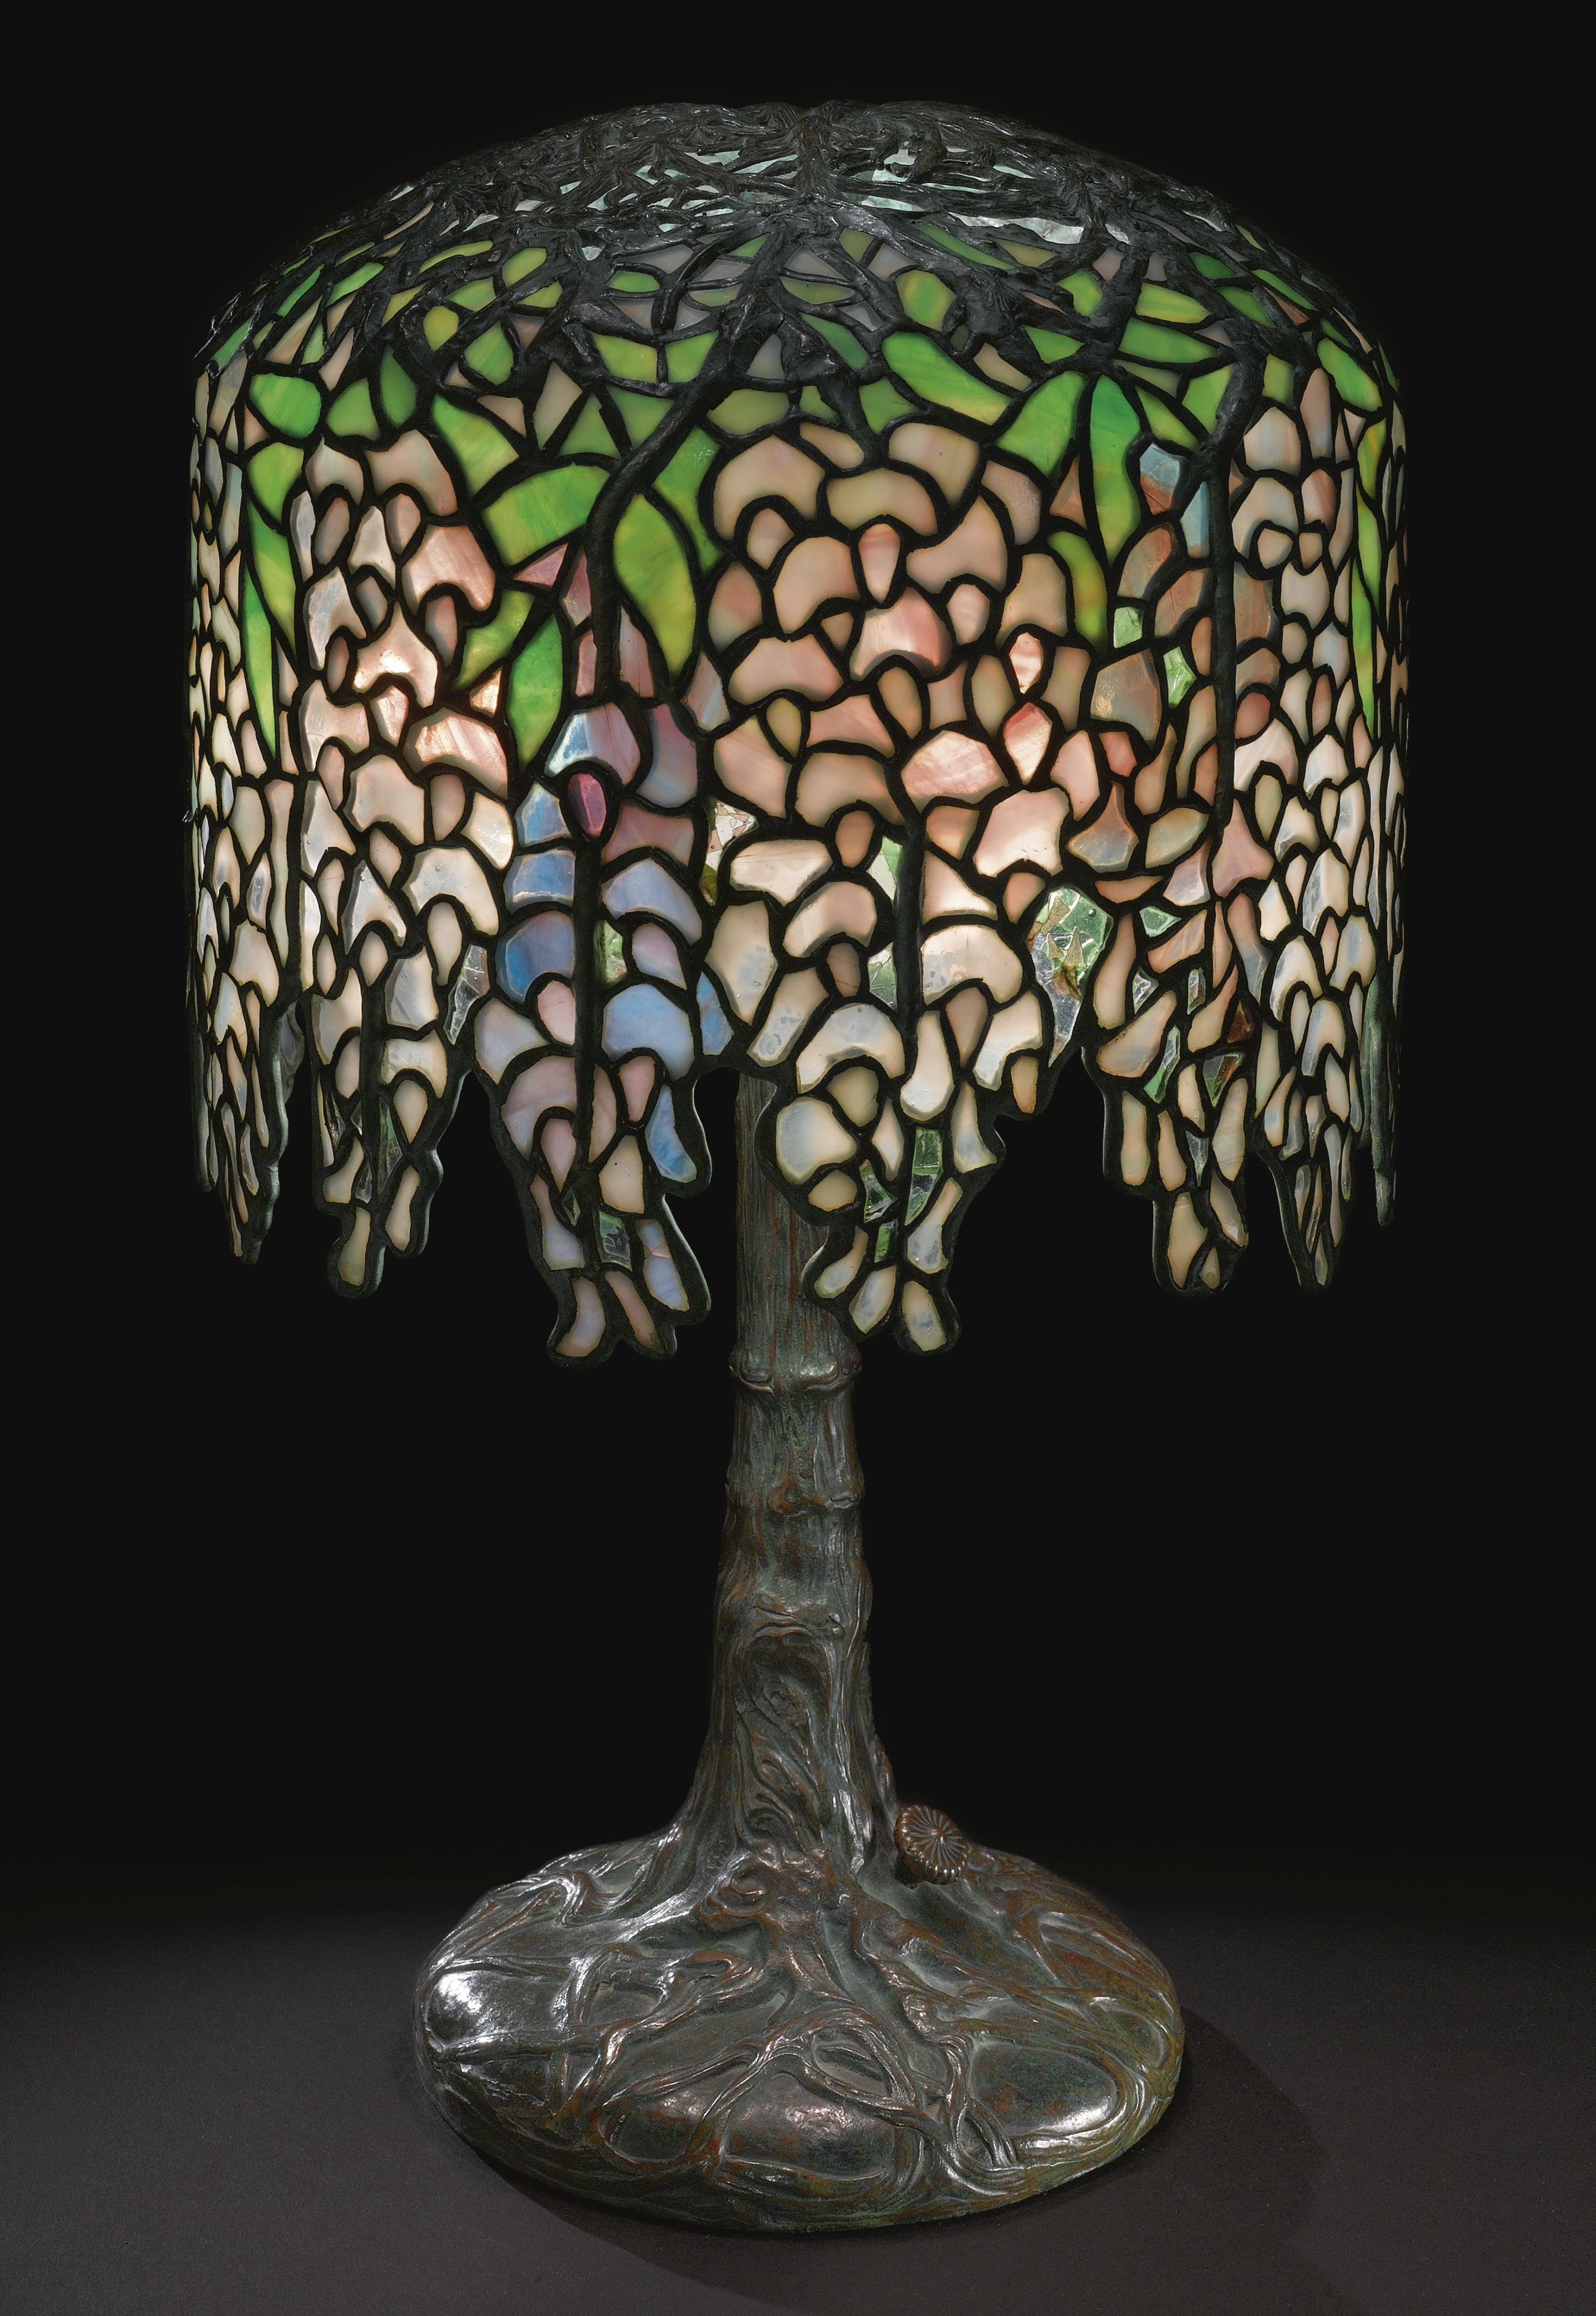 Dale tiffany floor lamps foter - Tiffany Studios Lamps And Glass Sell Well At Sotheby S New York Important Century Design Sale June 2012